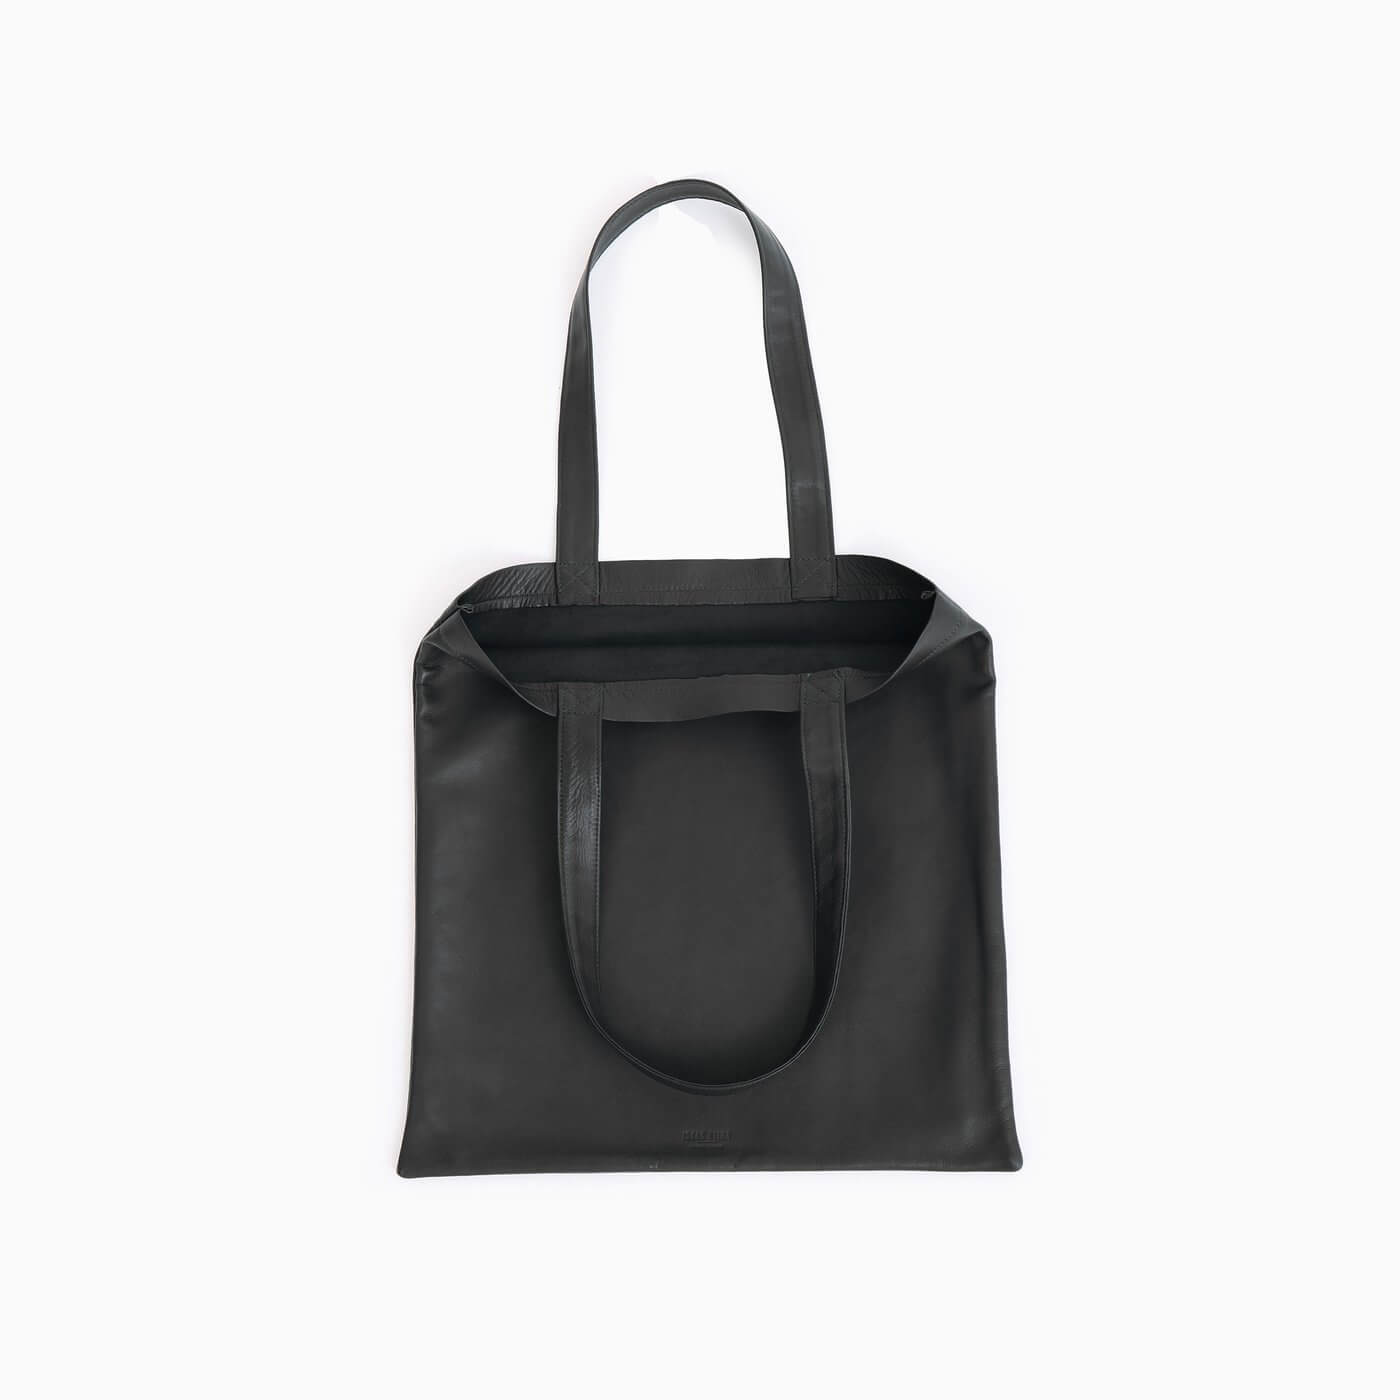 Ultra-Soft Leather Tote